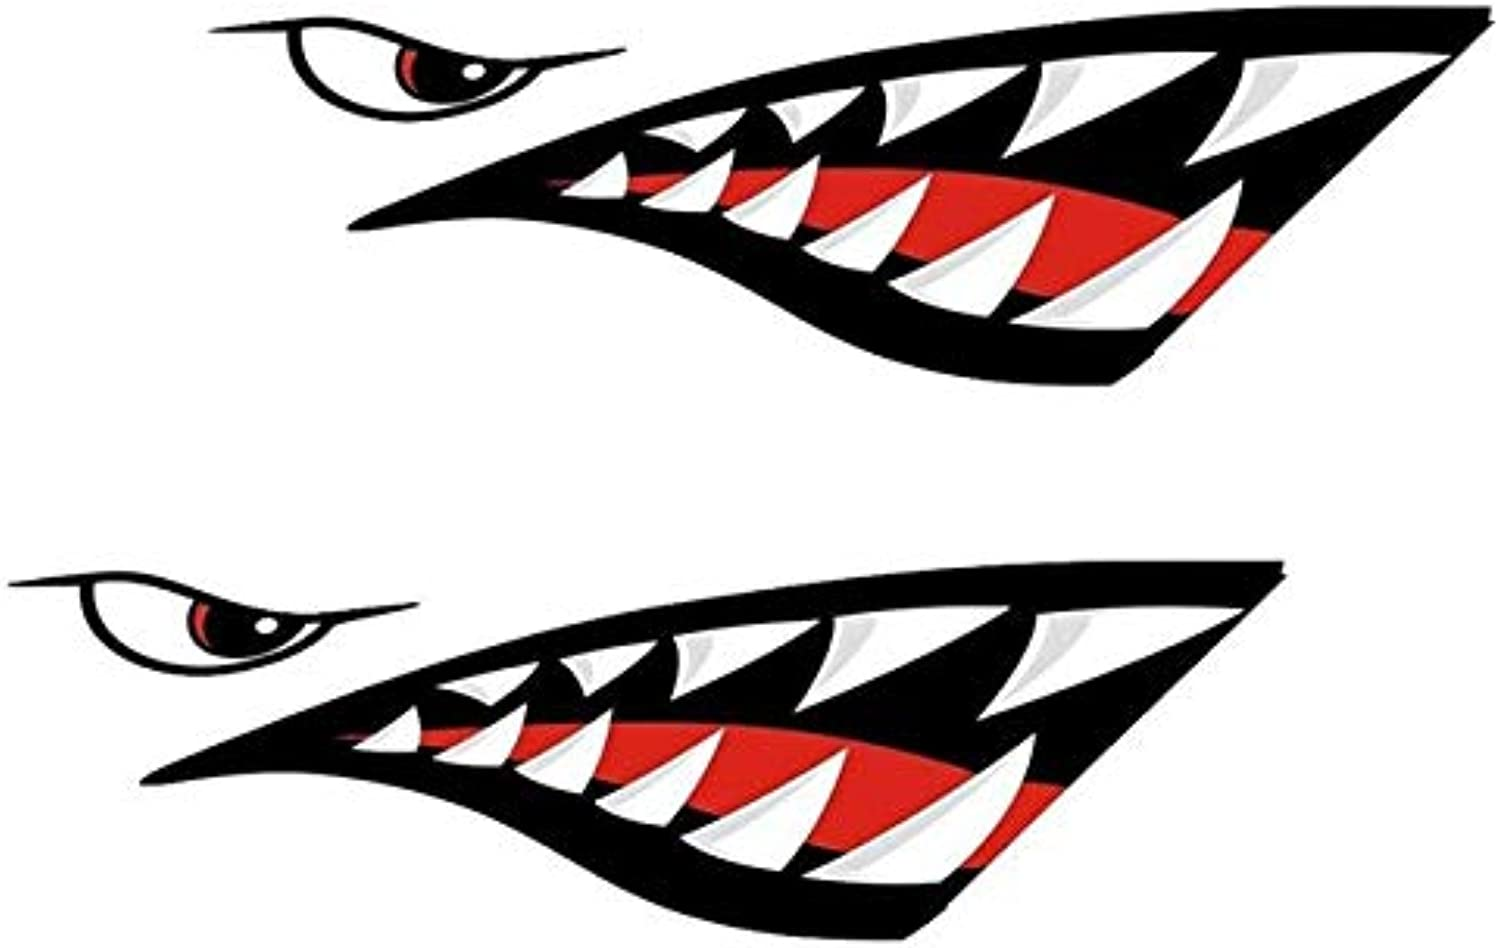 Shark Teeth Mouth Decals Sticker for Fishing Boat Canoe Car Truck Kayak NJ88  (color Name  Black)